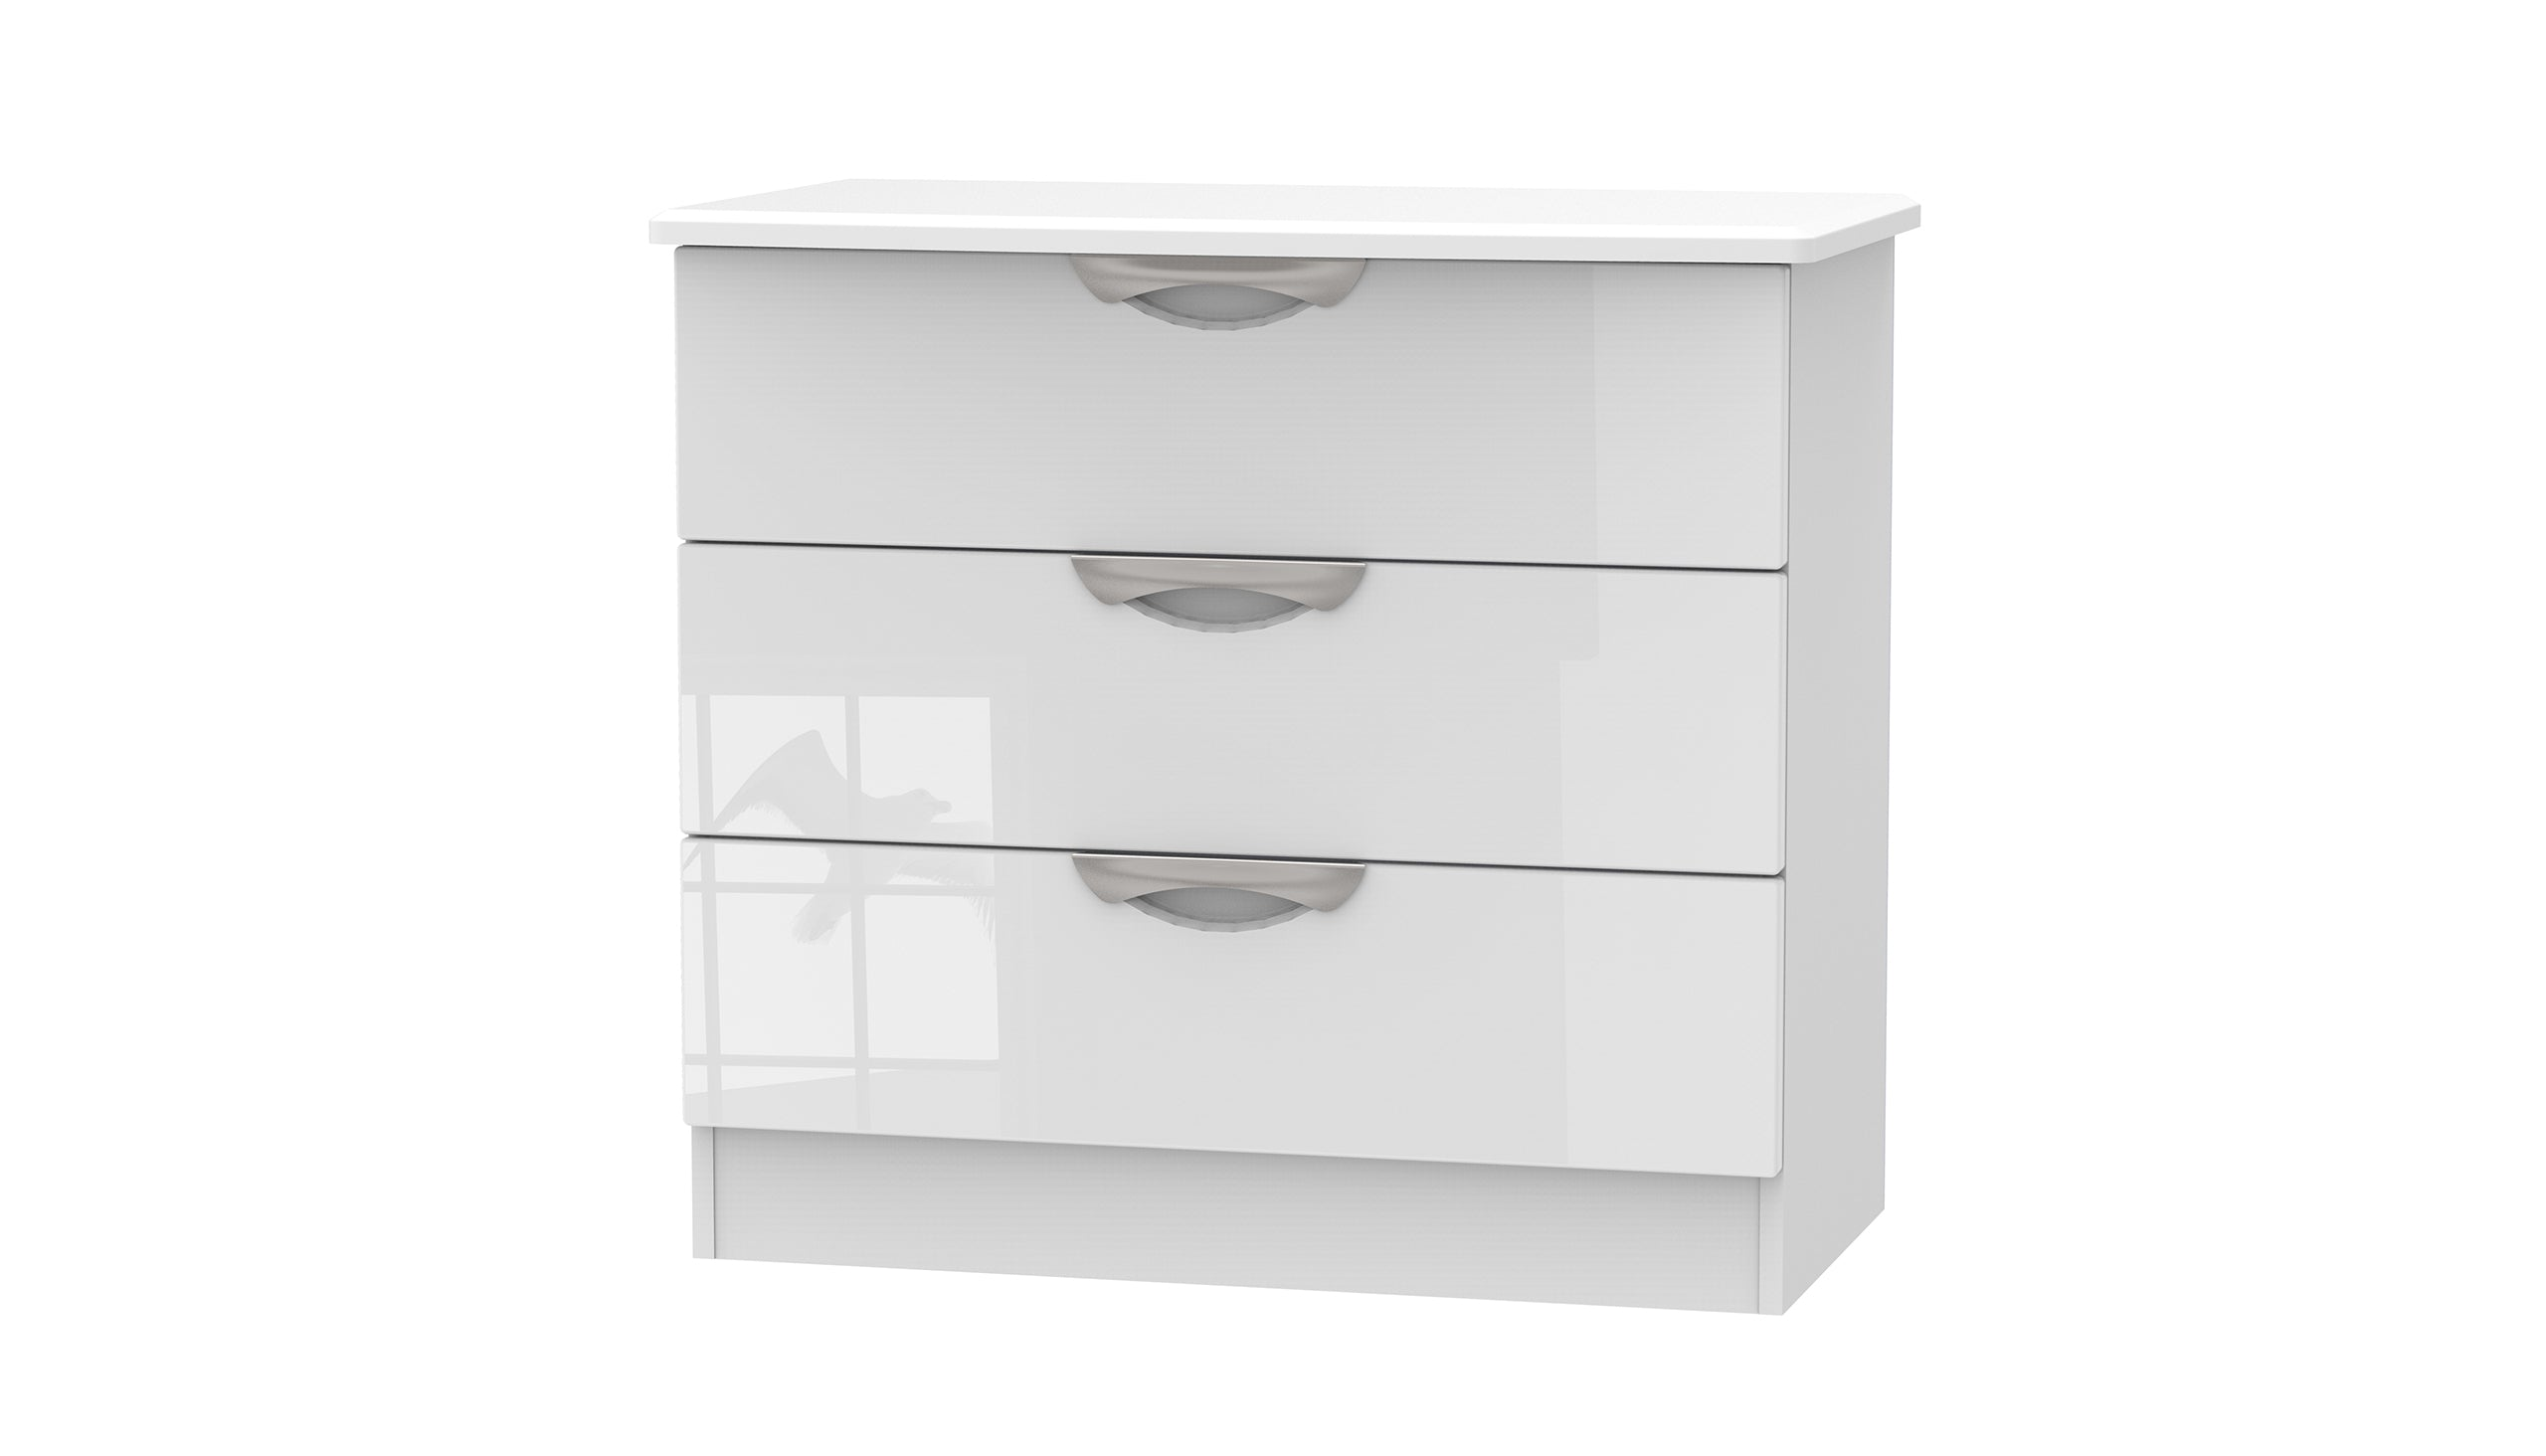 Moda 3 Drawer Chest - AHF Furniture & Carpets